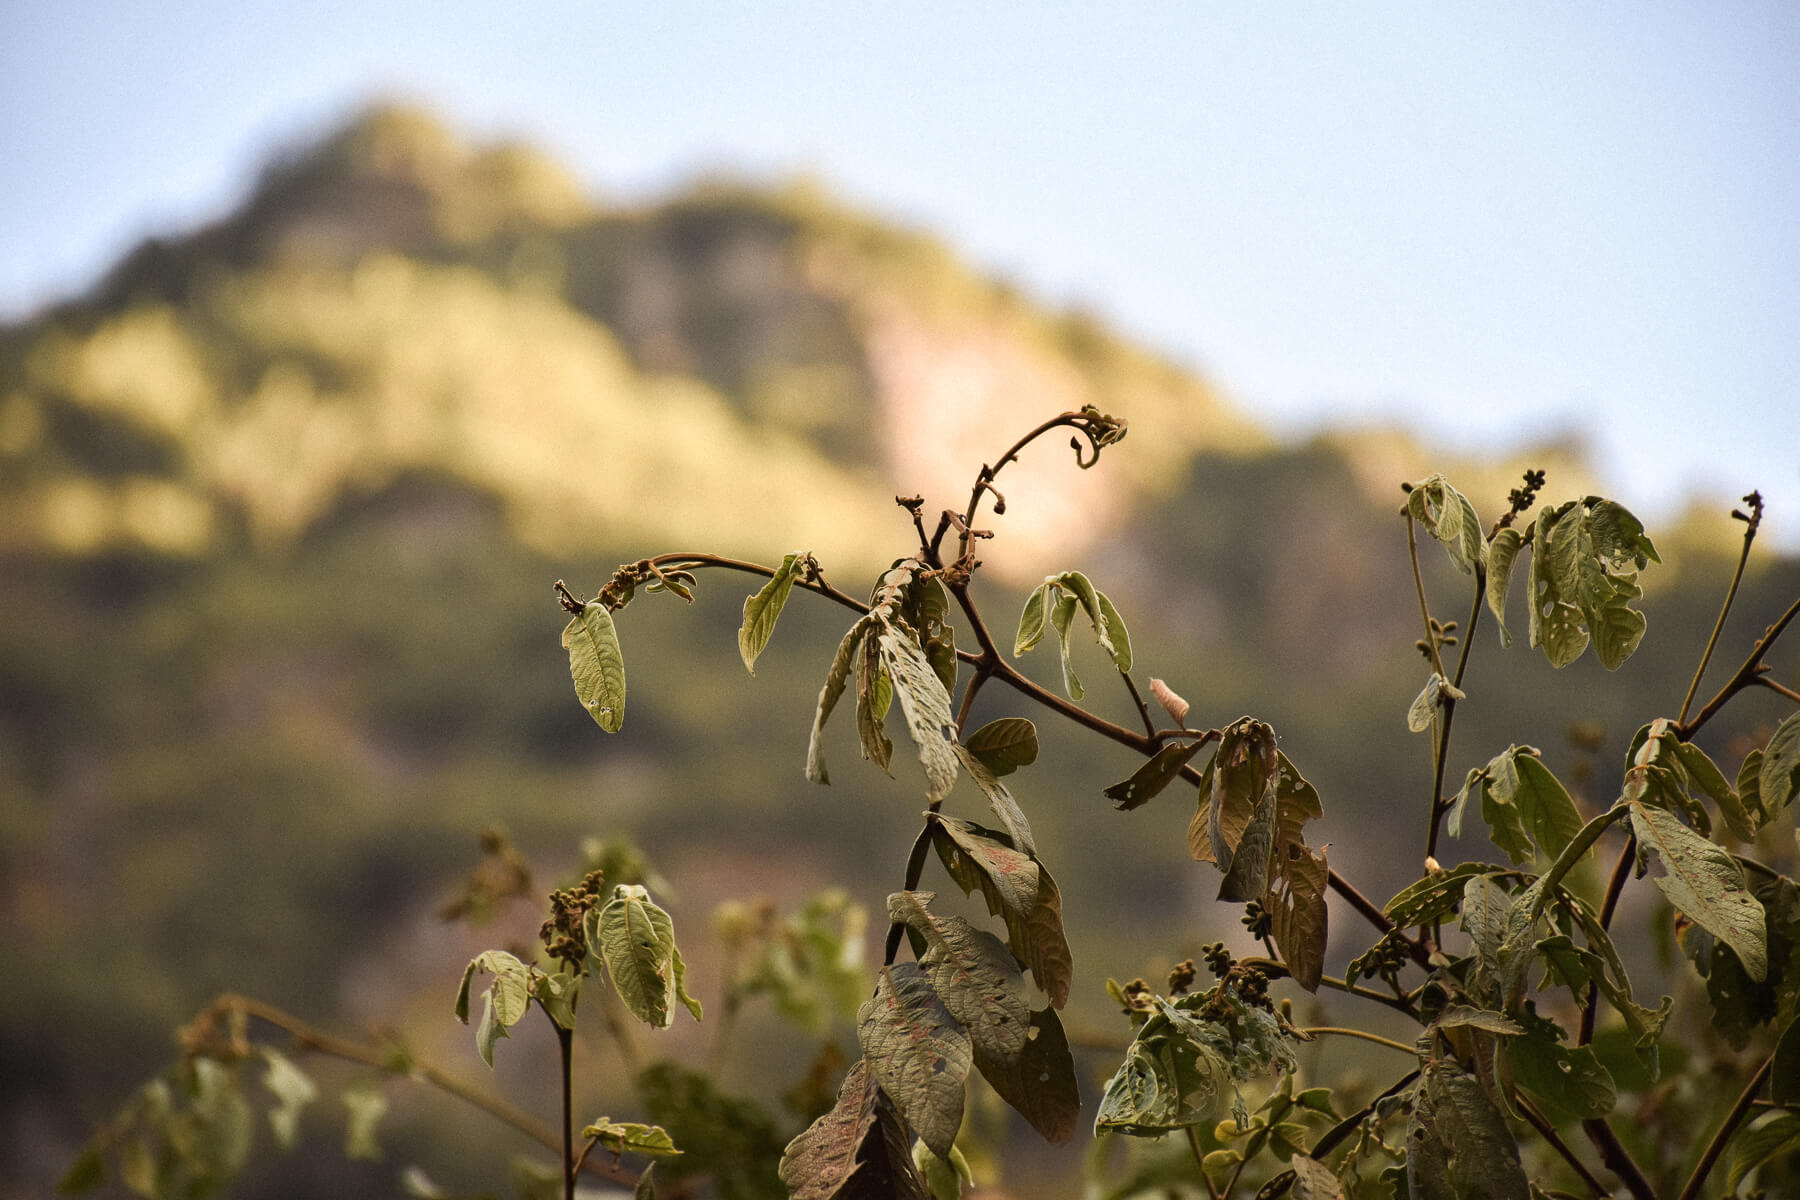 Crisp, clear green leaves with rugged hill completely blurred in the background